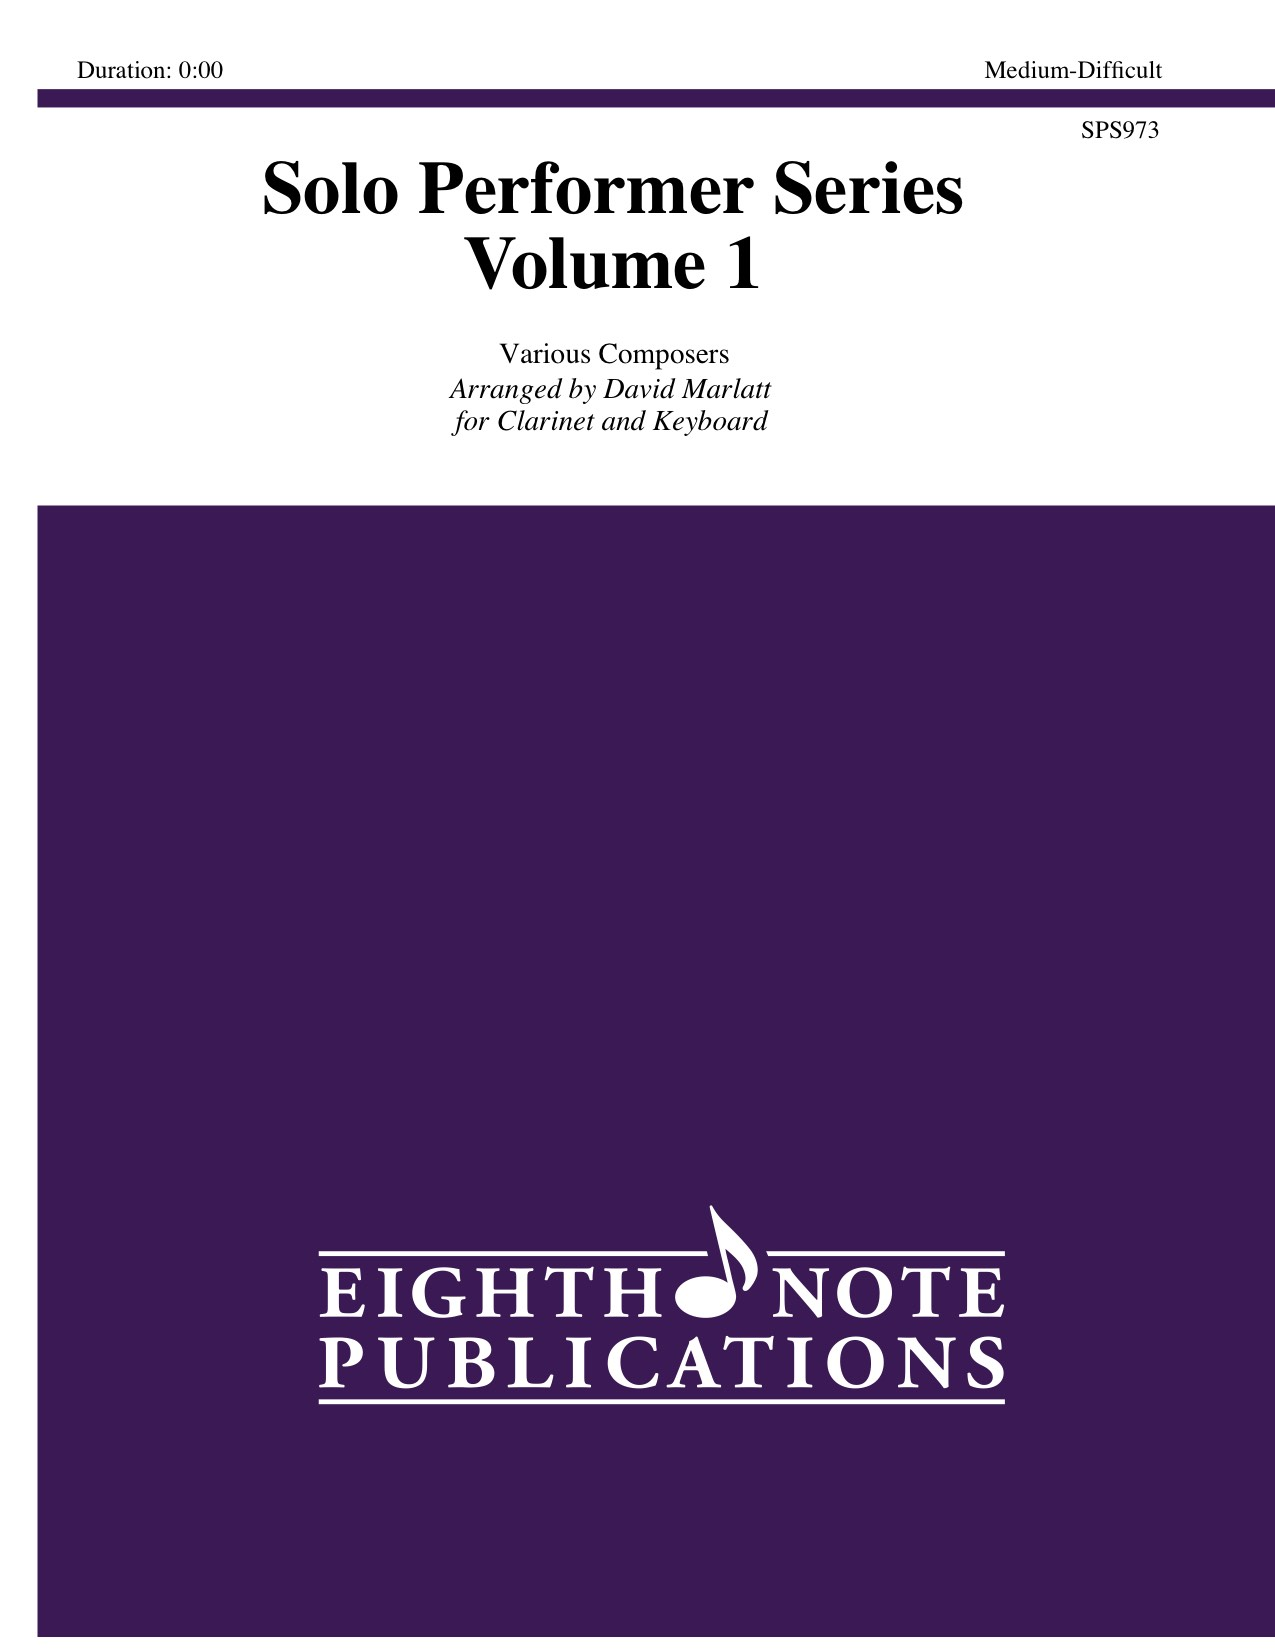 Solo Performer Series - Volume 1 -  Various